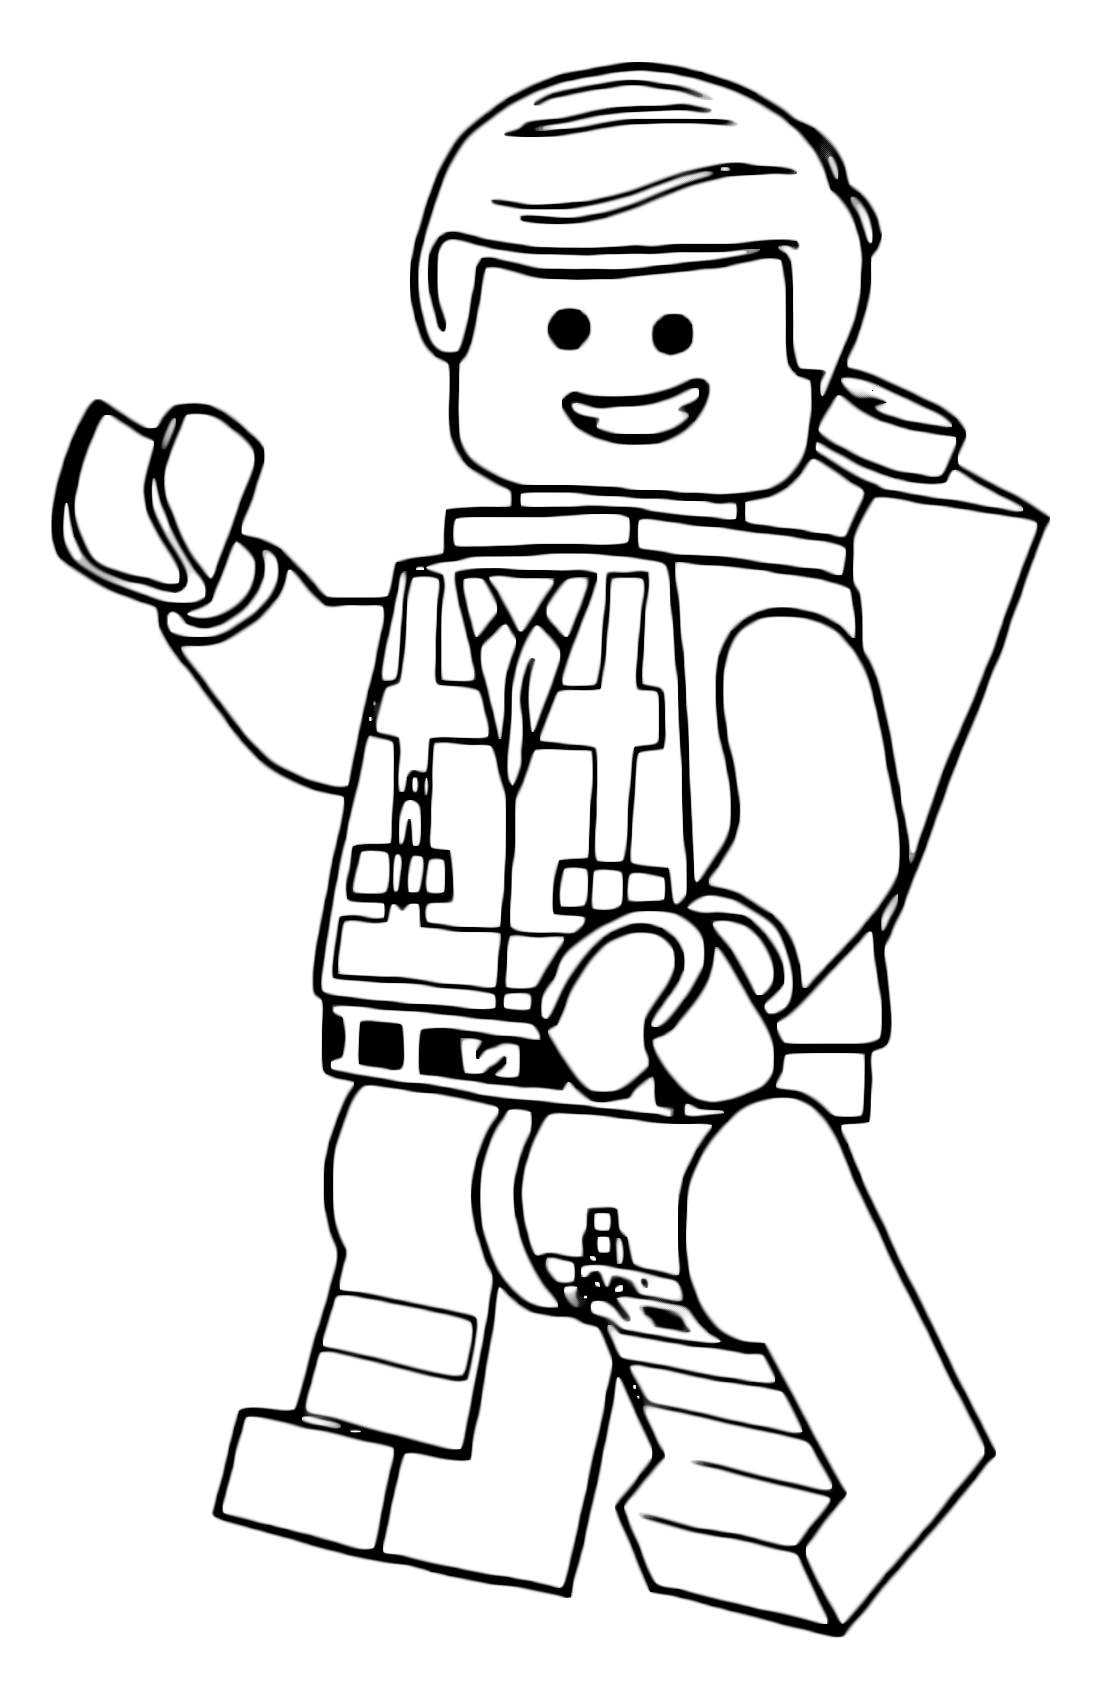 coloring lego printables lego star wars coloring pages best coloring pages for kids printables lego coloring